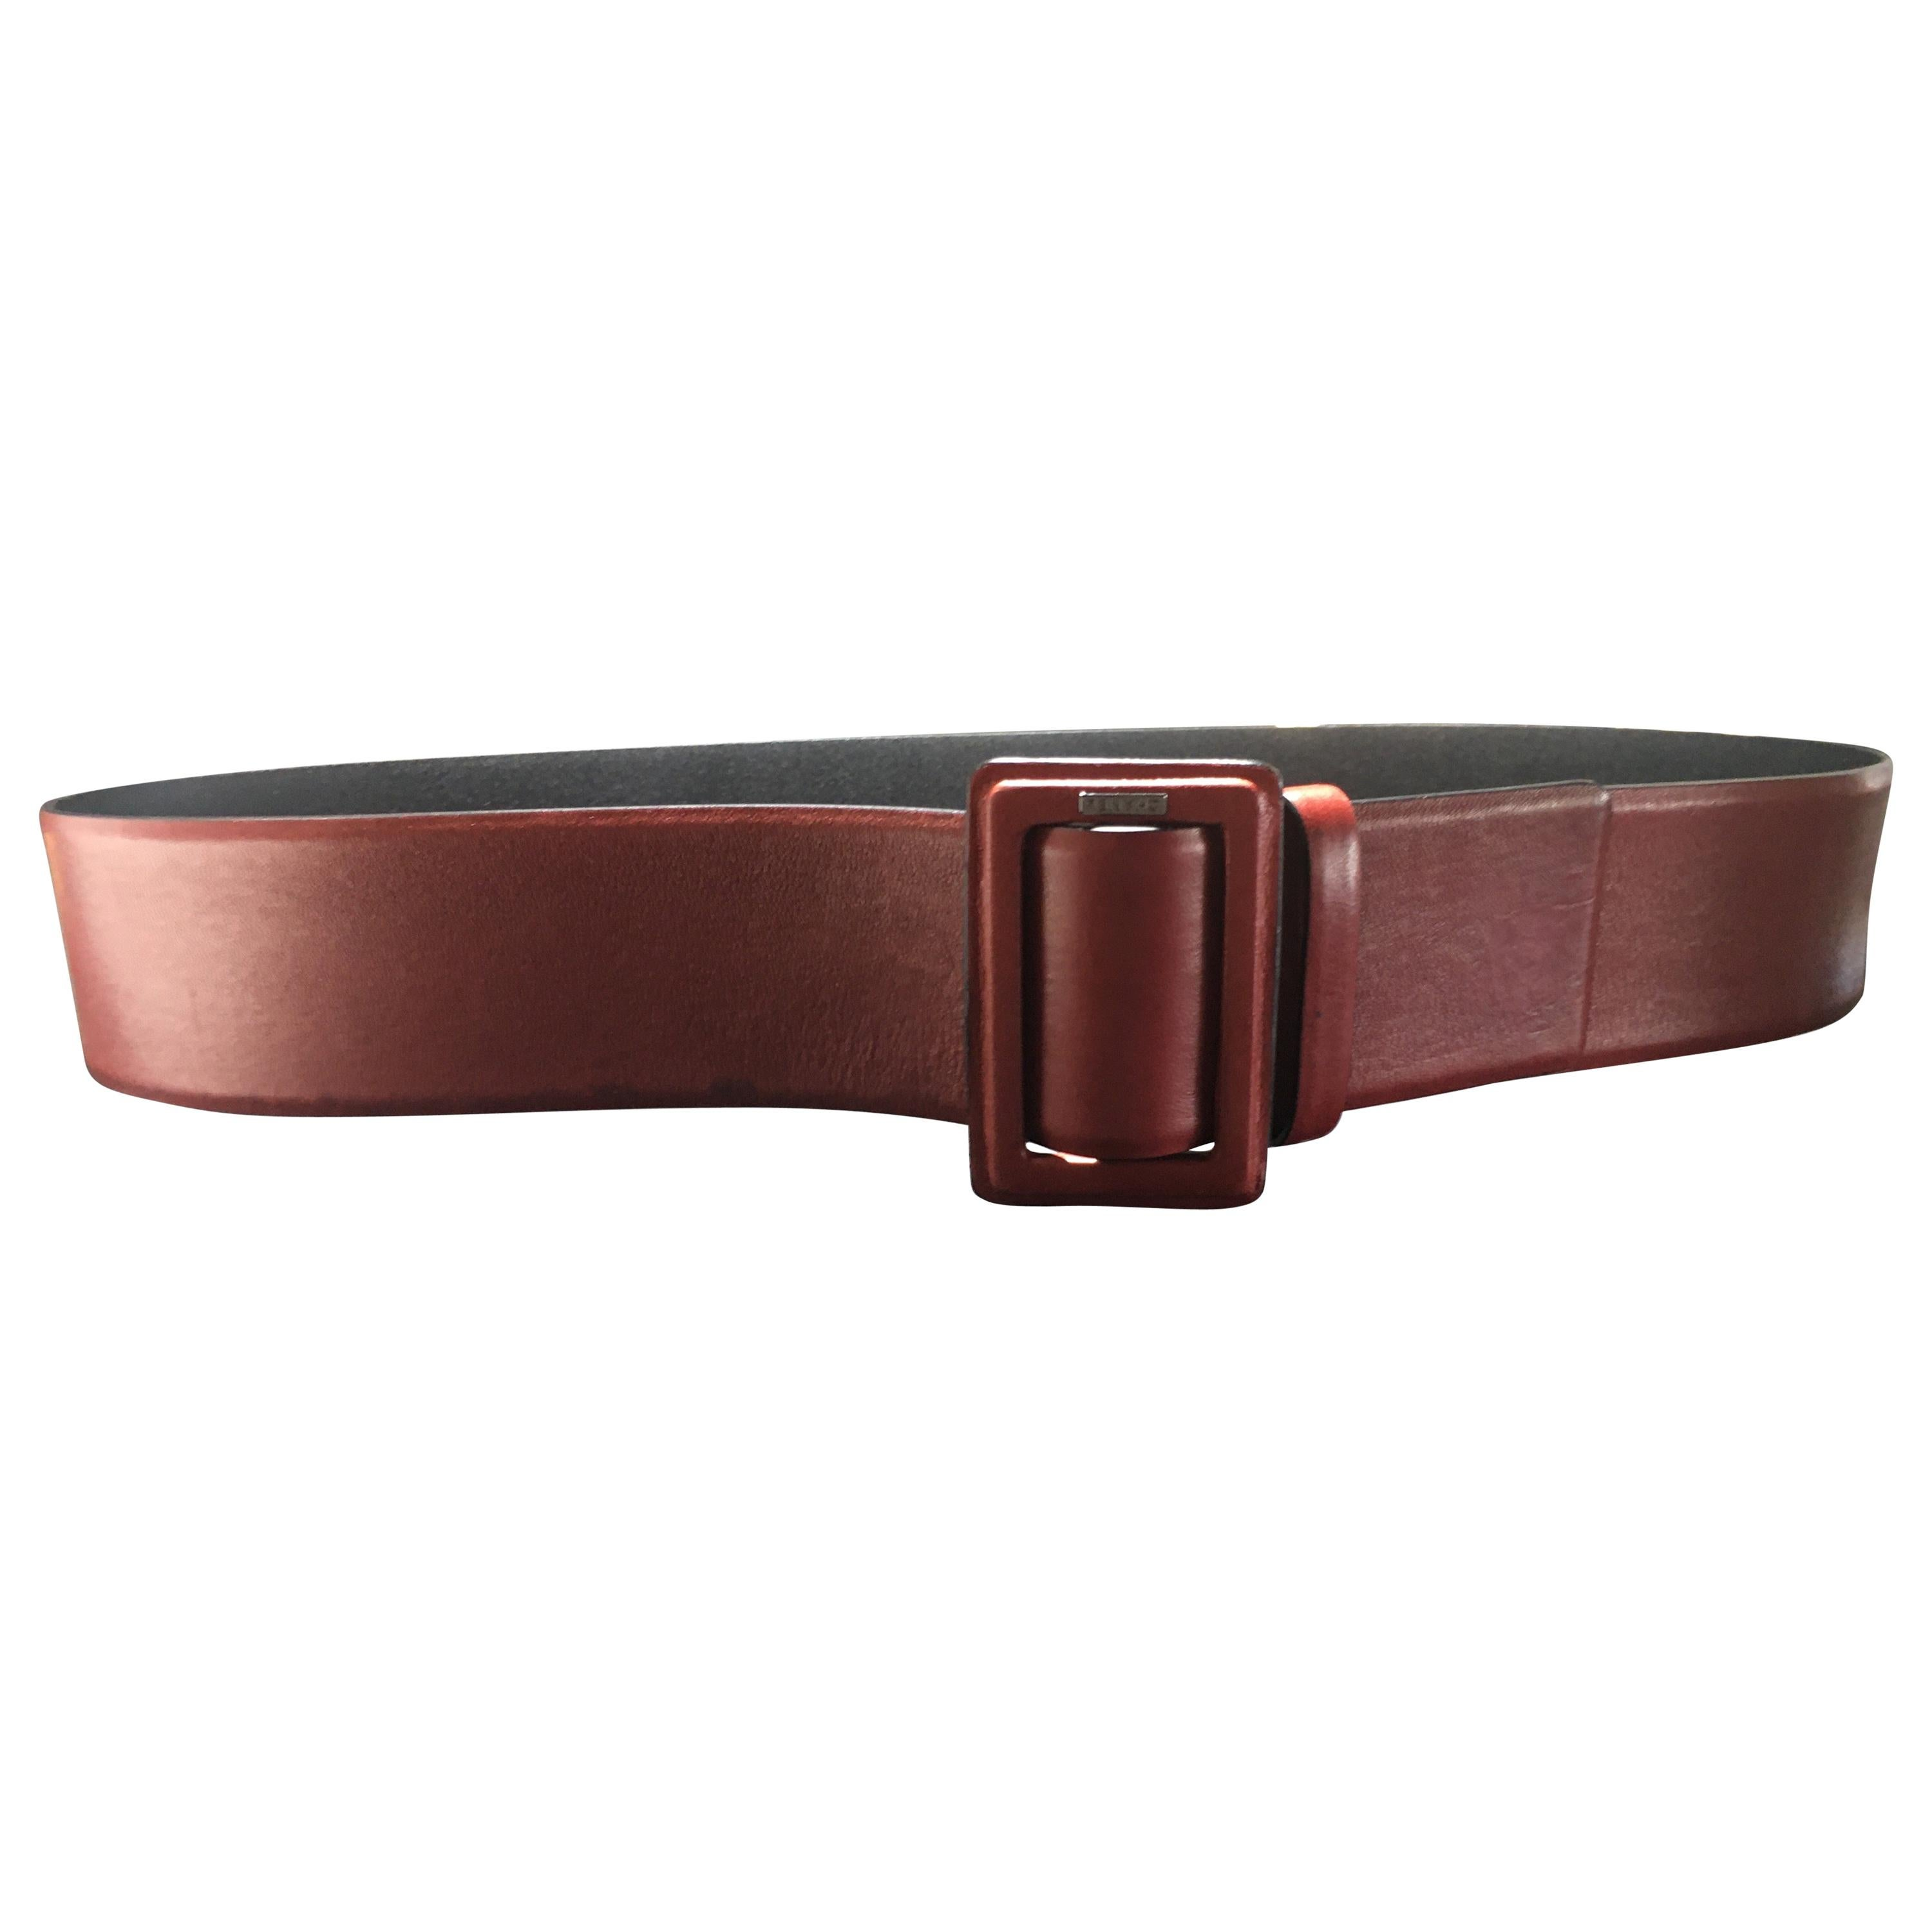 Chanel Red Leather Belt, 1990-2000s Pristine Condition, Never Worn.